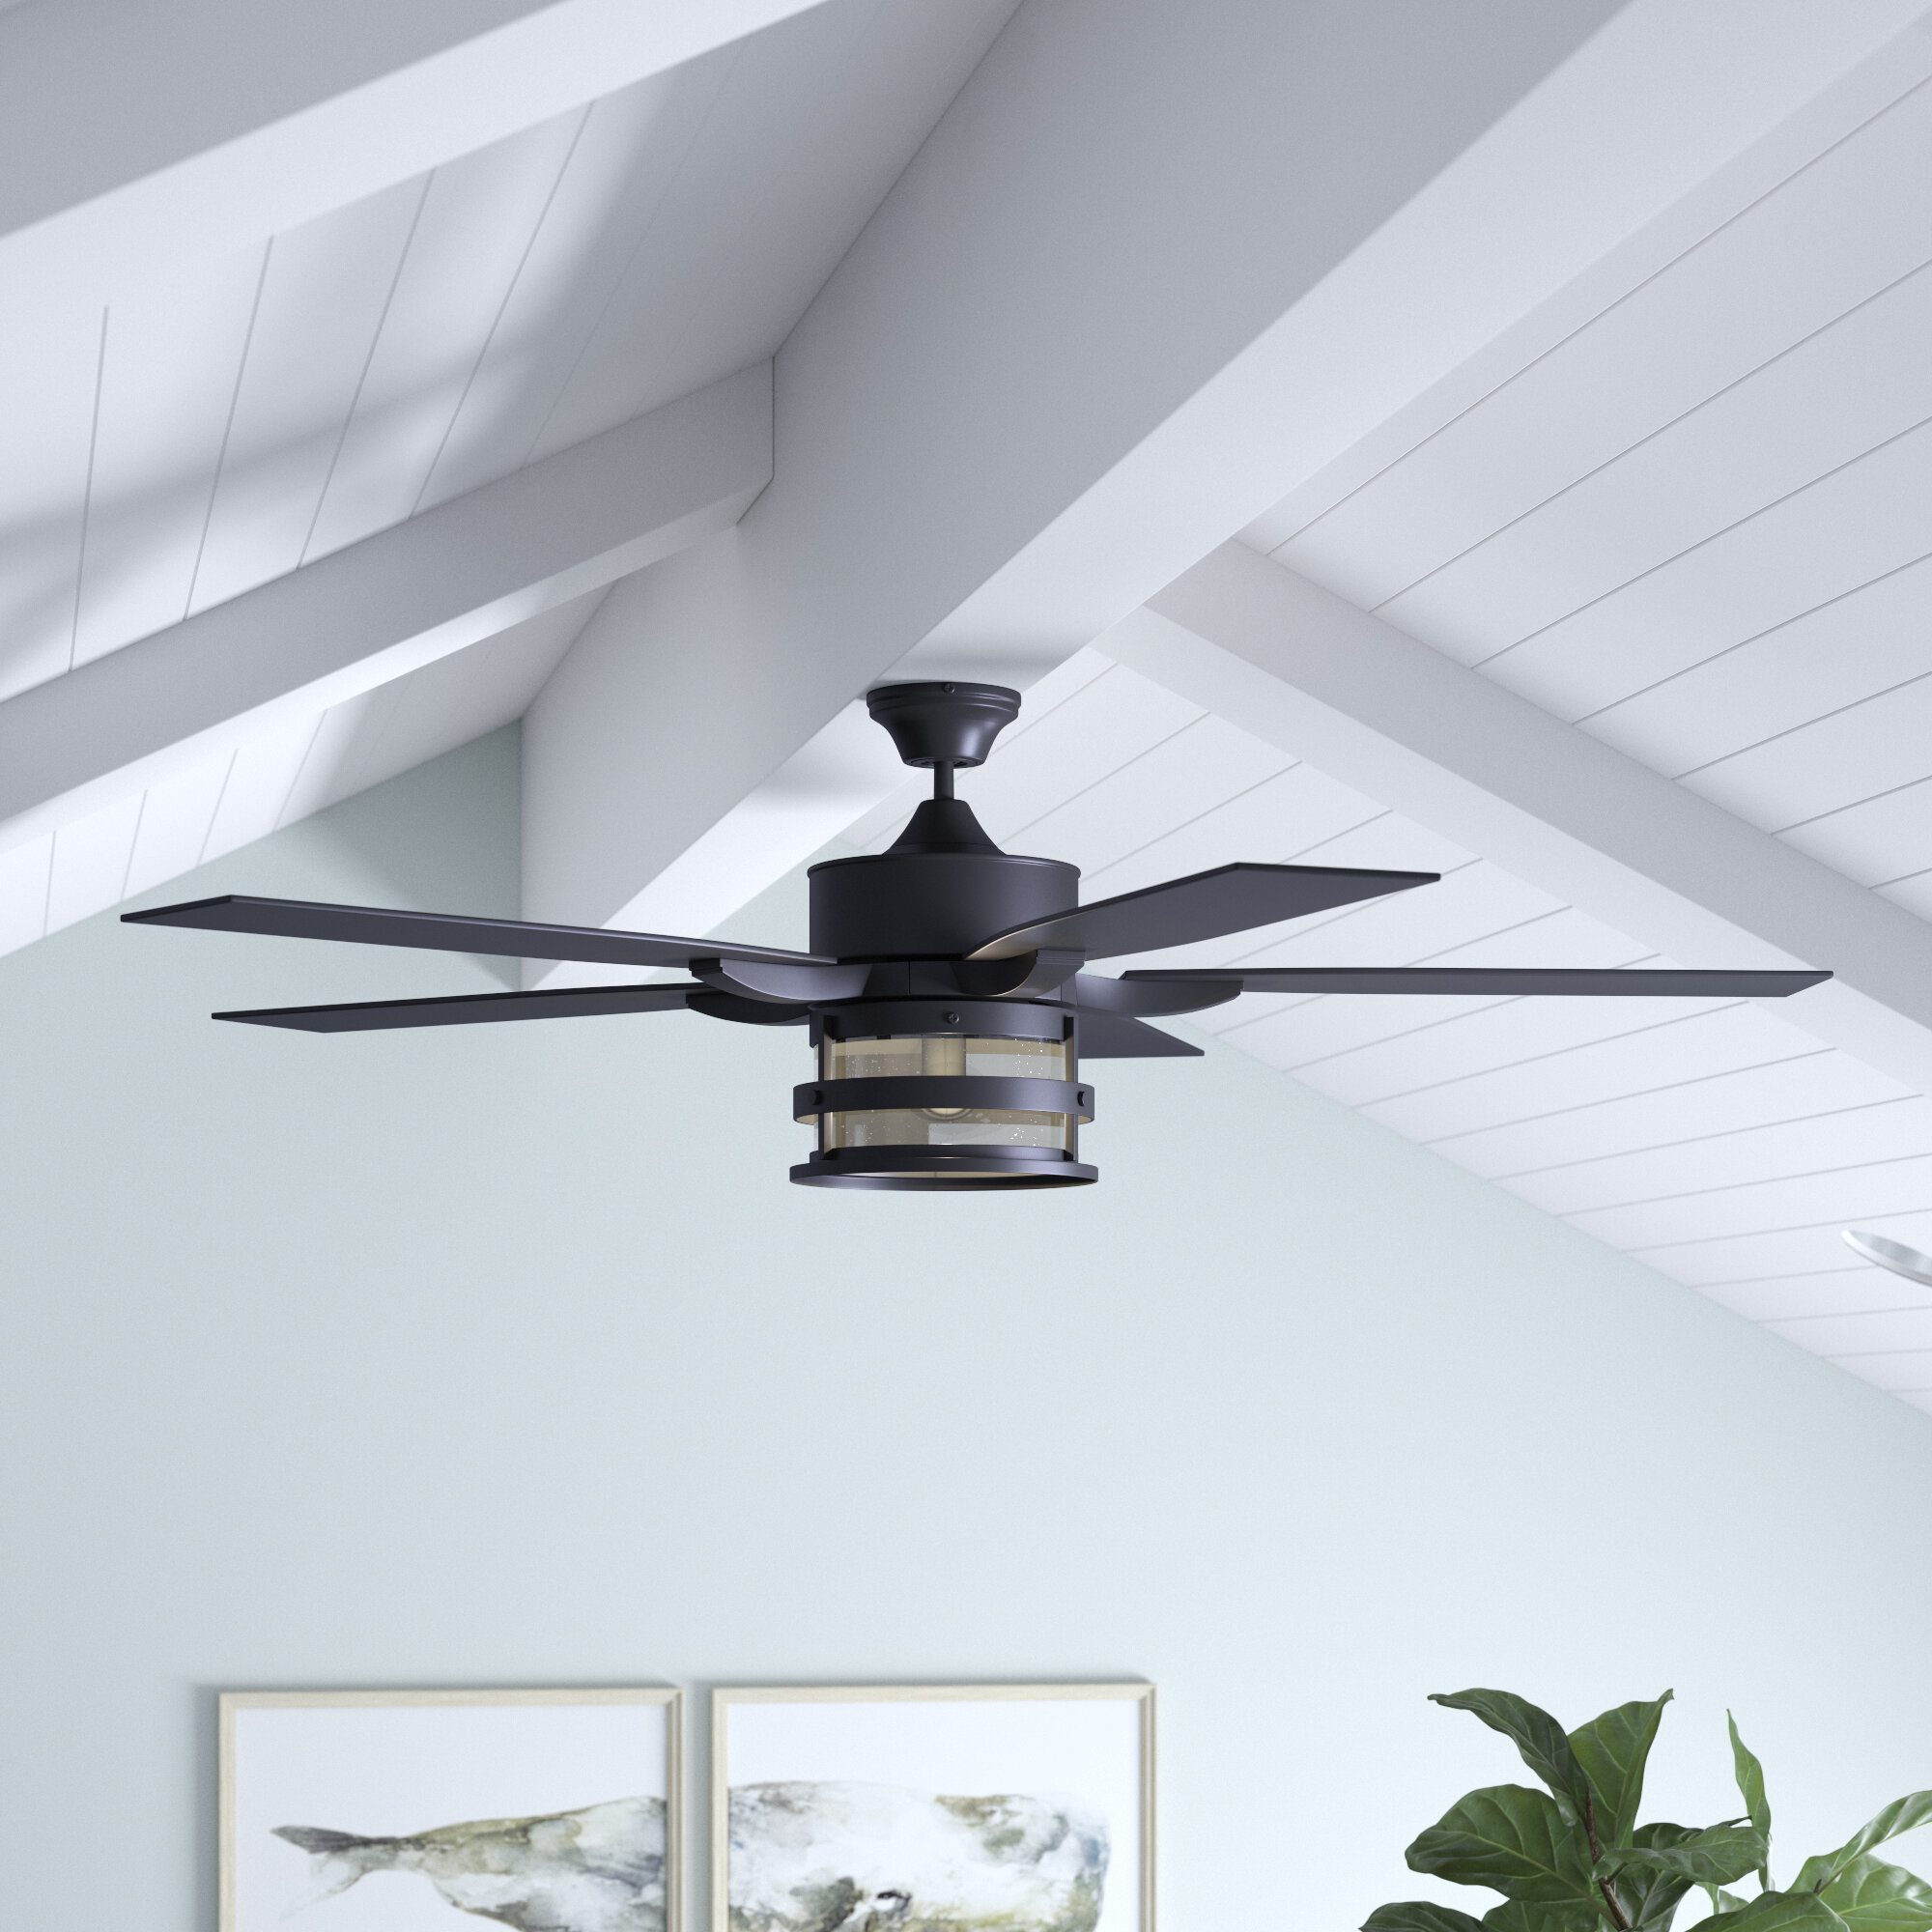 Breakwater Bay 52 Wilhite 5 Blade Standard Ceiling Fan With Remote Control And Light Kit Included Reviews Wayfair